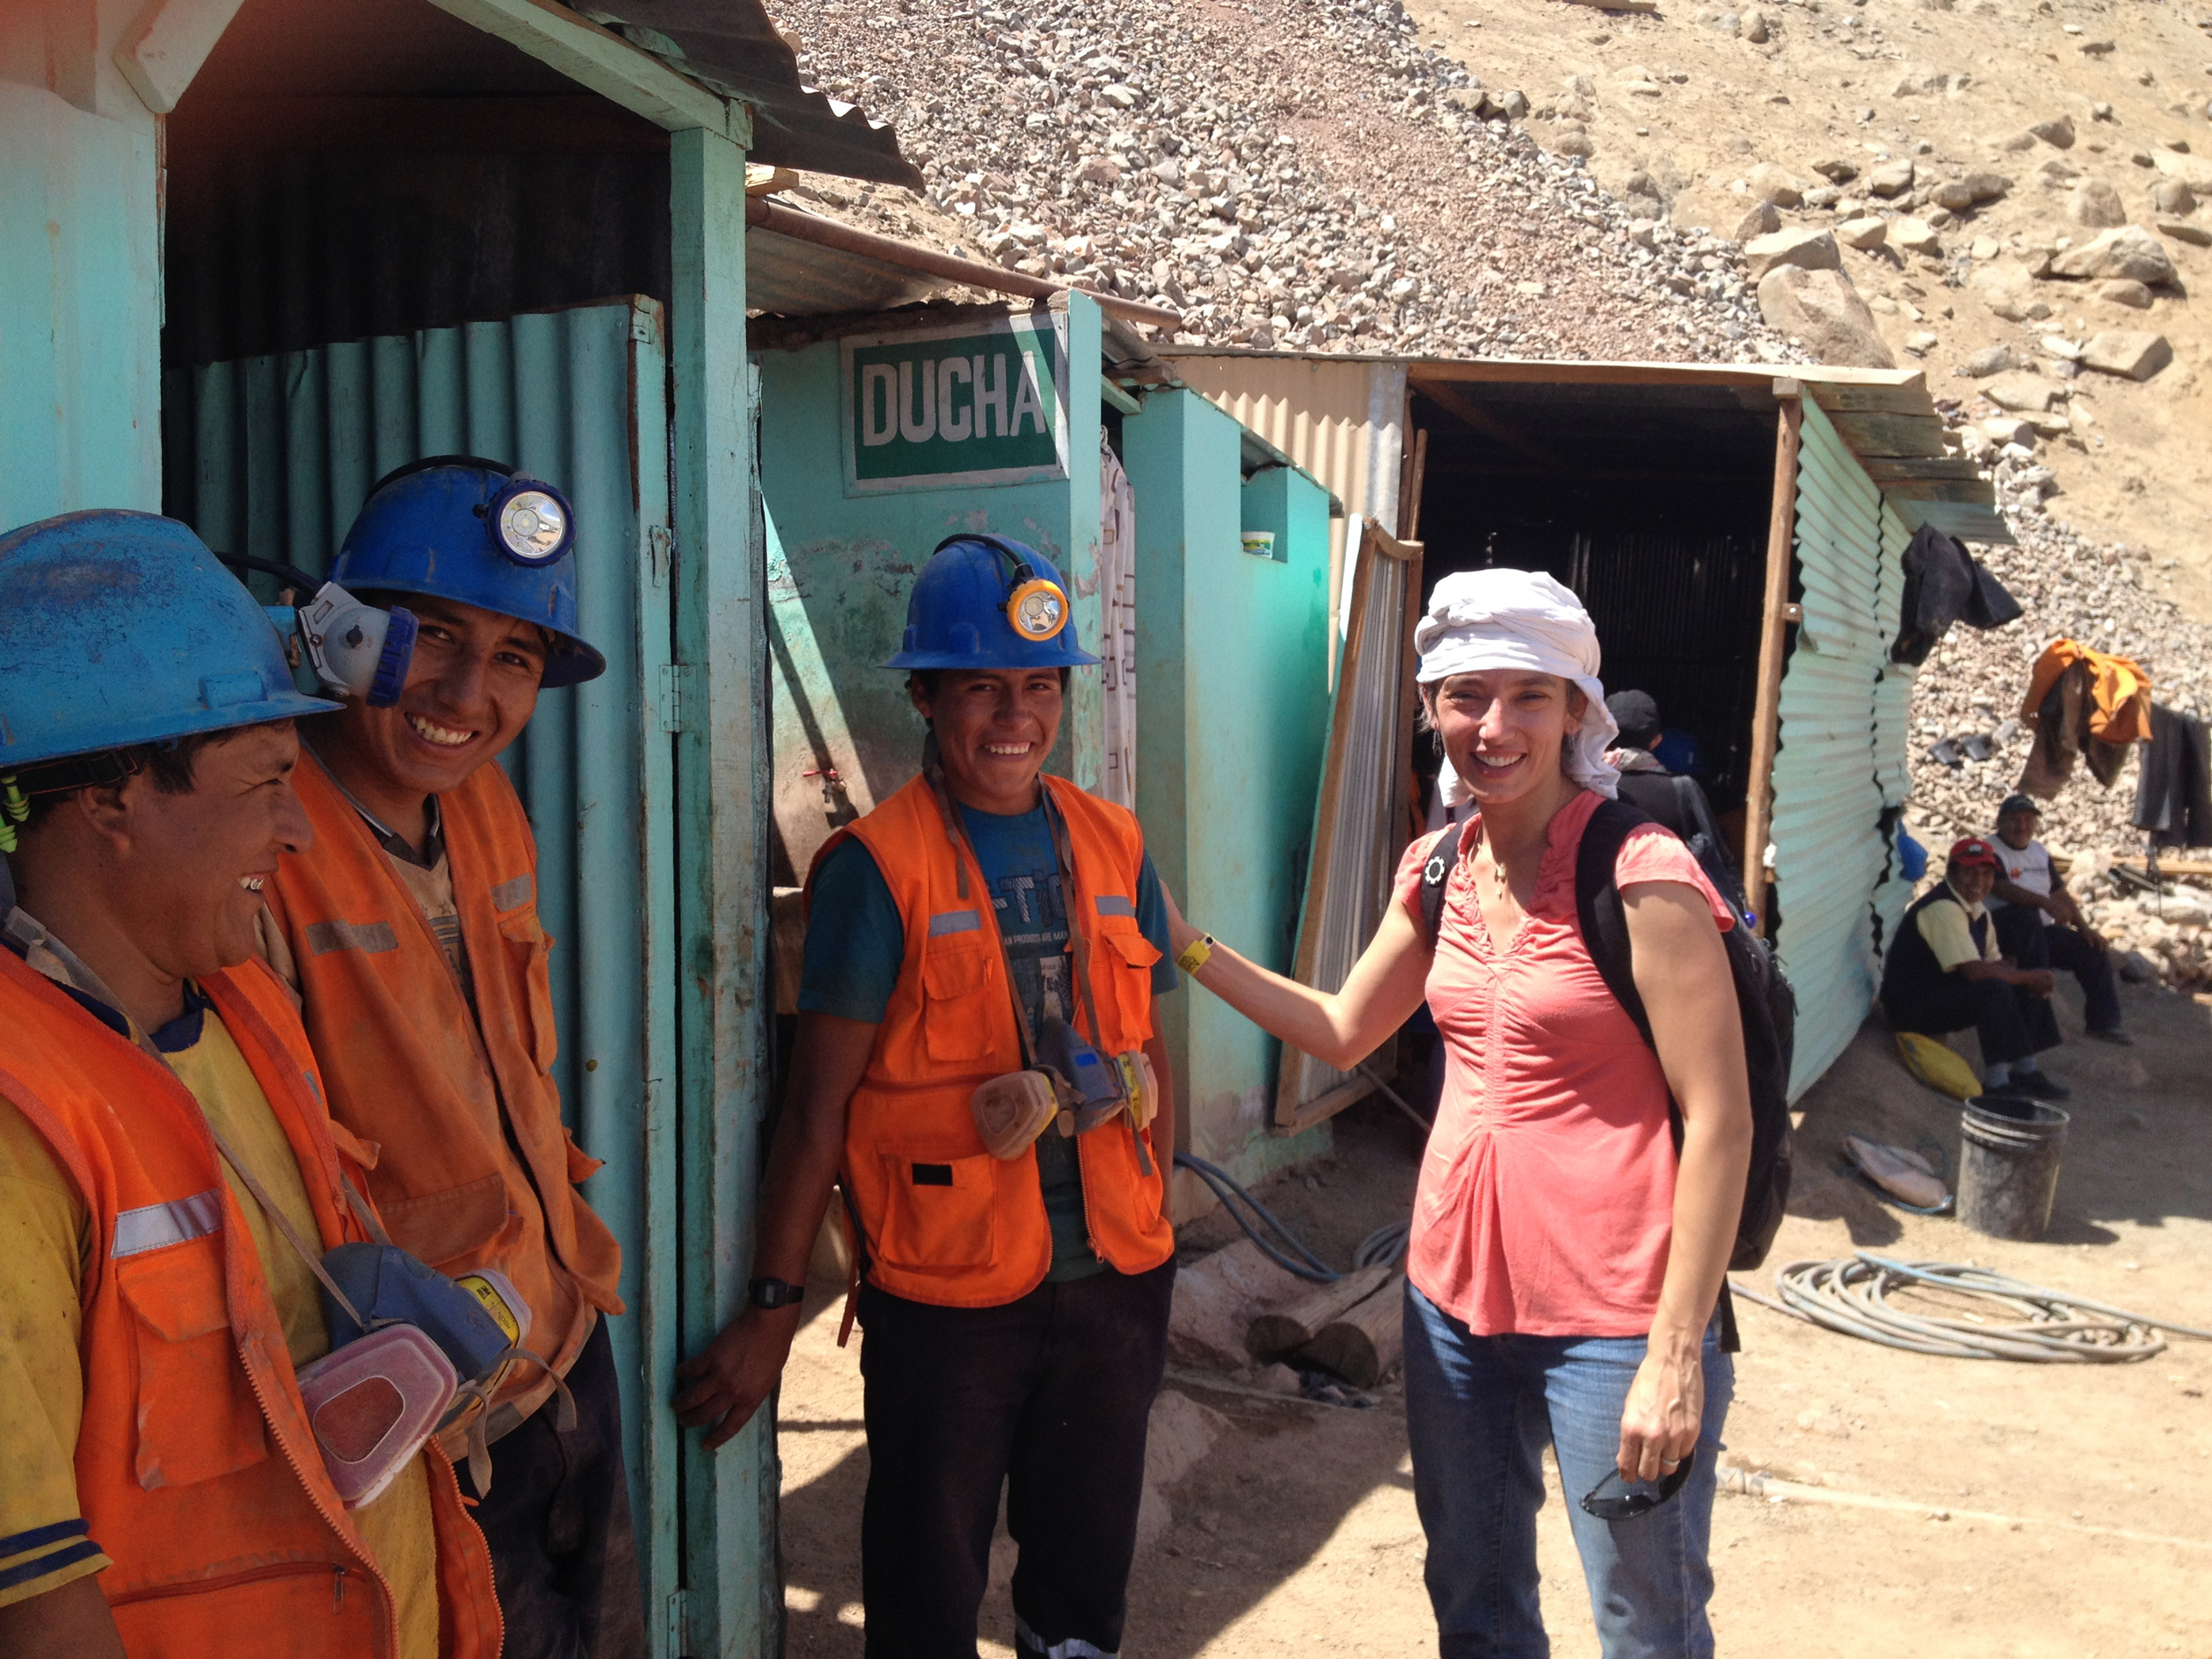 Christina T. Miller visiting with miners from AURELSA - a Fairmined certified mining organization in Relave, Peru.